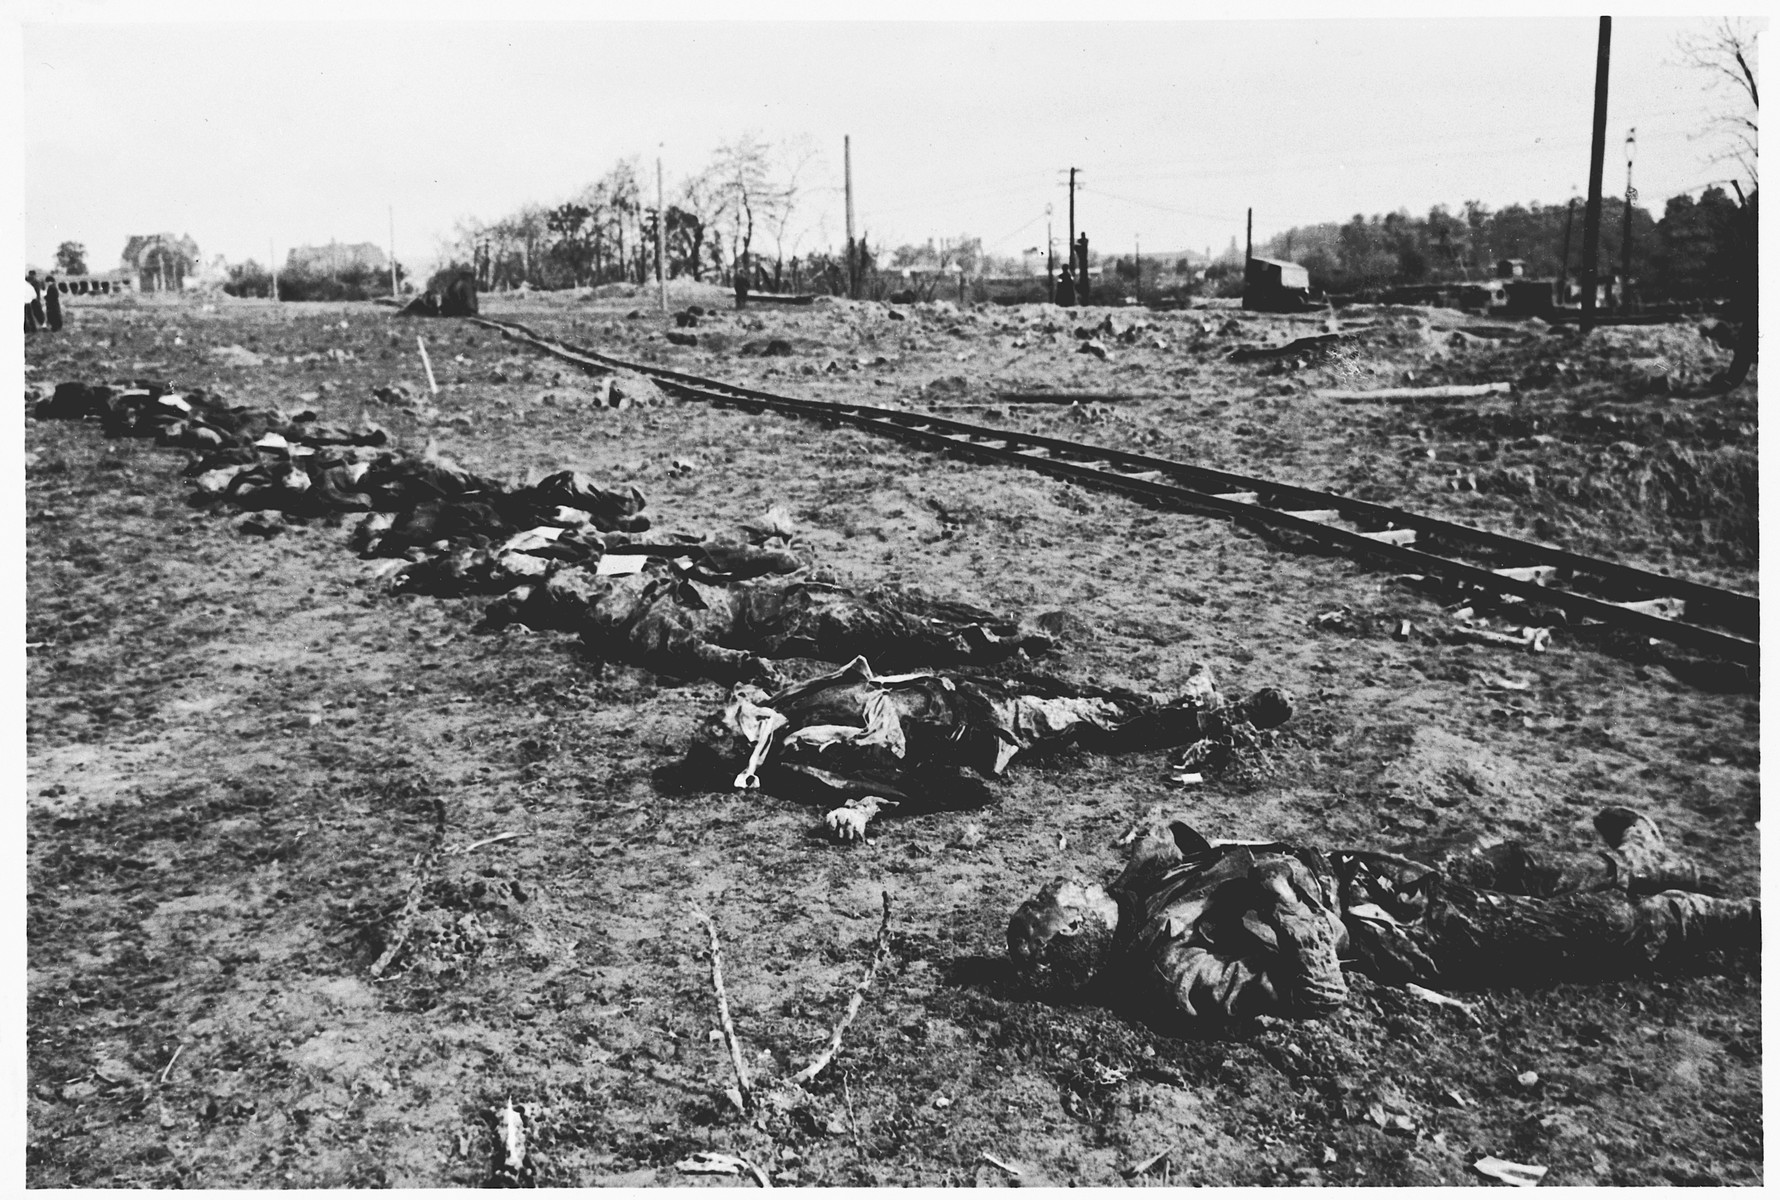 The bodies of Italians who shot by the Gestapo in Wilhelmshoehe on March 31, 1945 lie next to a railroad tracks after their exhumation from a mass grave.